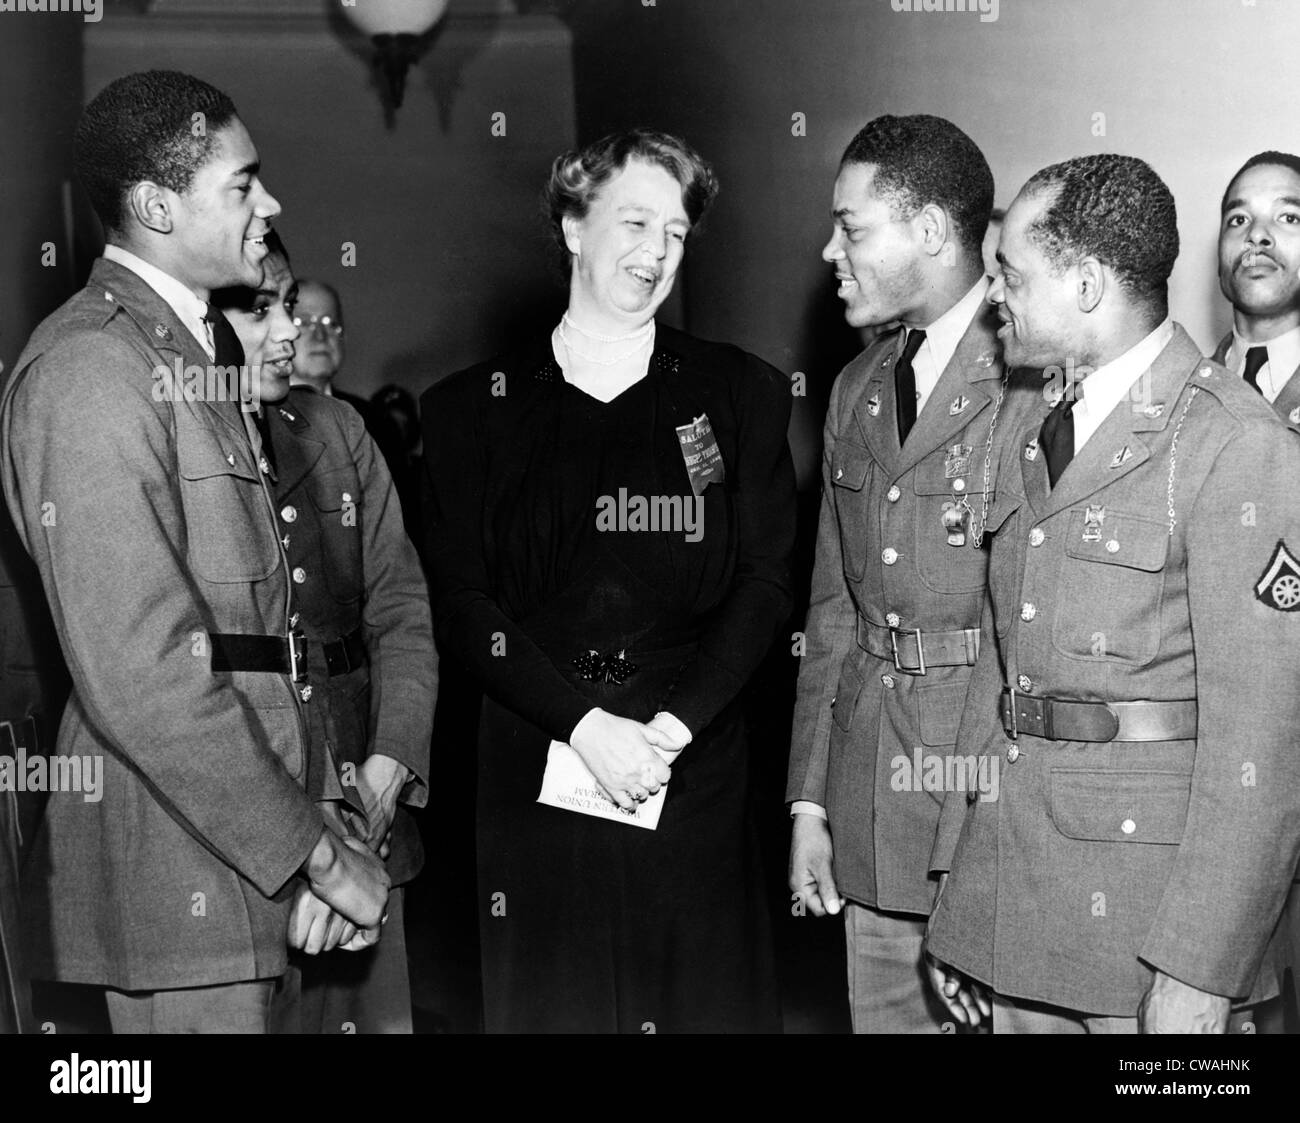 Mental Health Essays Eleanor Roosevelt Greets African American Troops Roosevelt Shortly After  United States Entry Into World War Ii She Would English Essay Friendship also Examples Of Thesis Statements For Narrative Essays Eleanor Roosevelt Greets African American Troops Roosevelt Shortly  Essay Papers Online